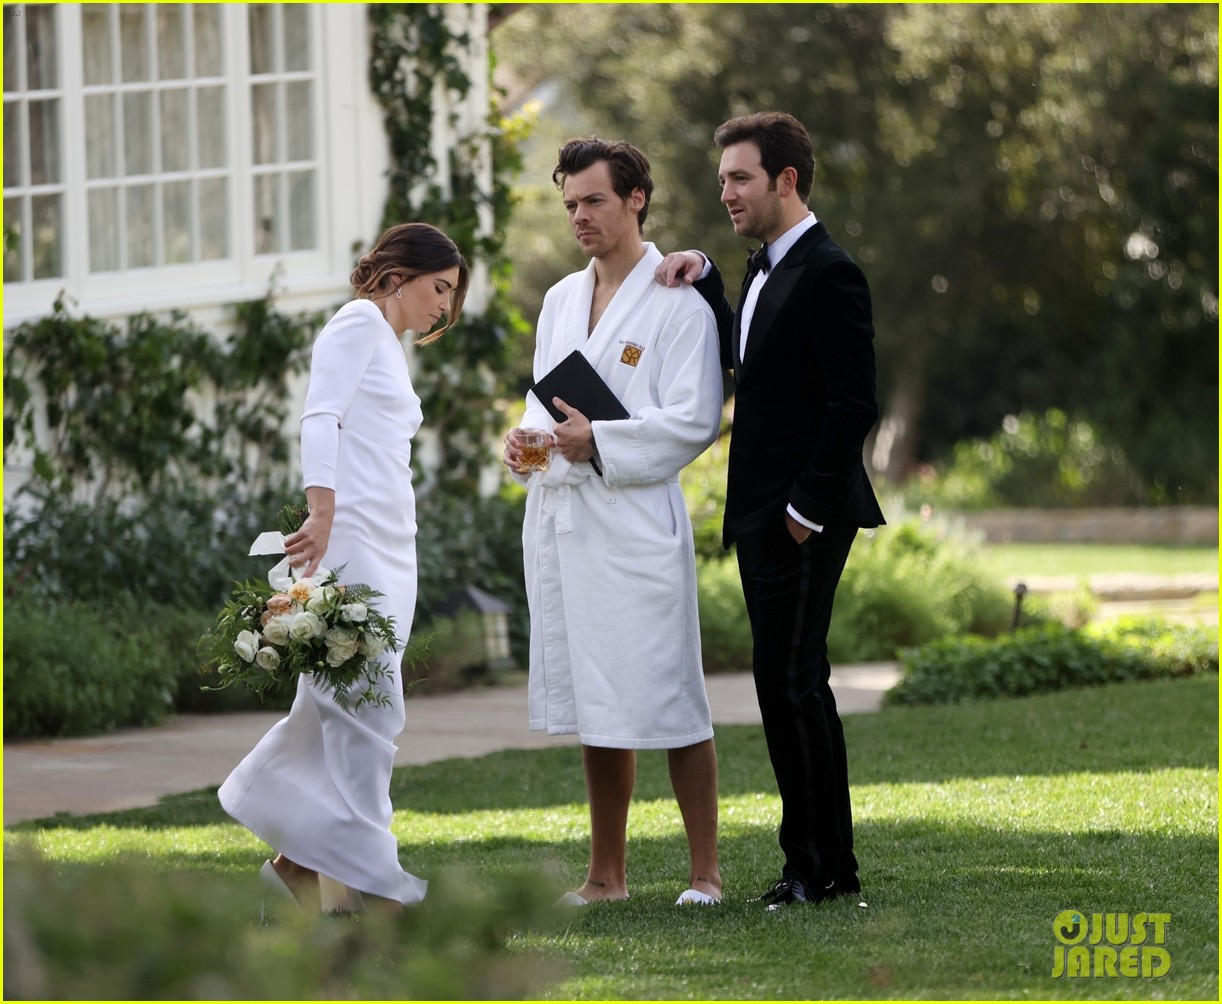 Harry Styles Wore A Bathrobe Slippers For His Manager S Wedding Photos We Have All The Pics Photo 4514863 Glenne Christiaansen Harry Styles Jeffrey Azoff Olivia Wilde Pictures Just Jared